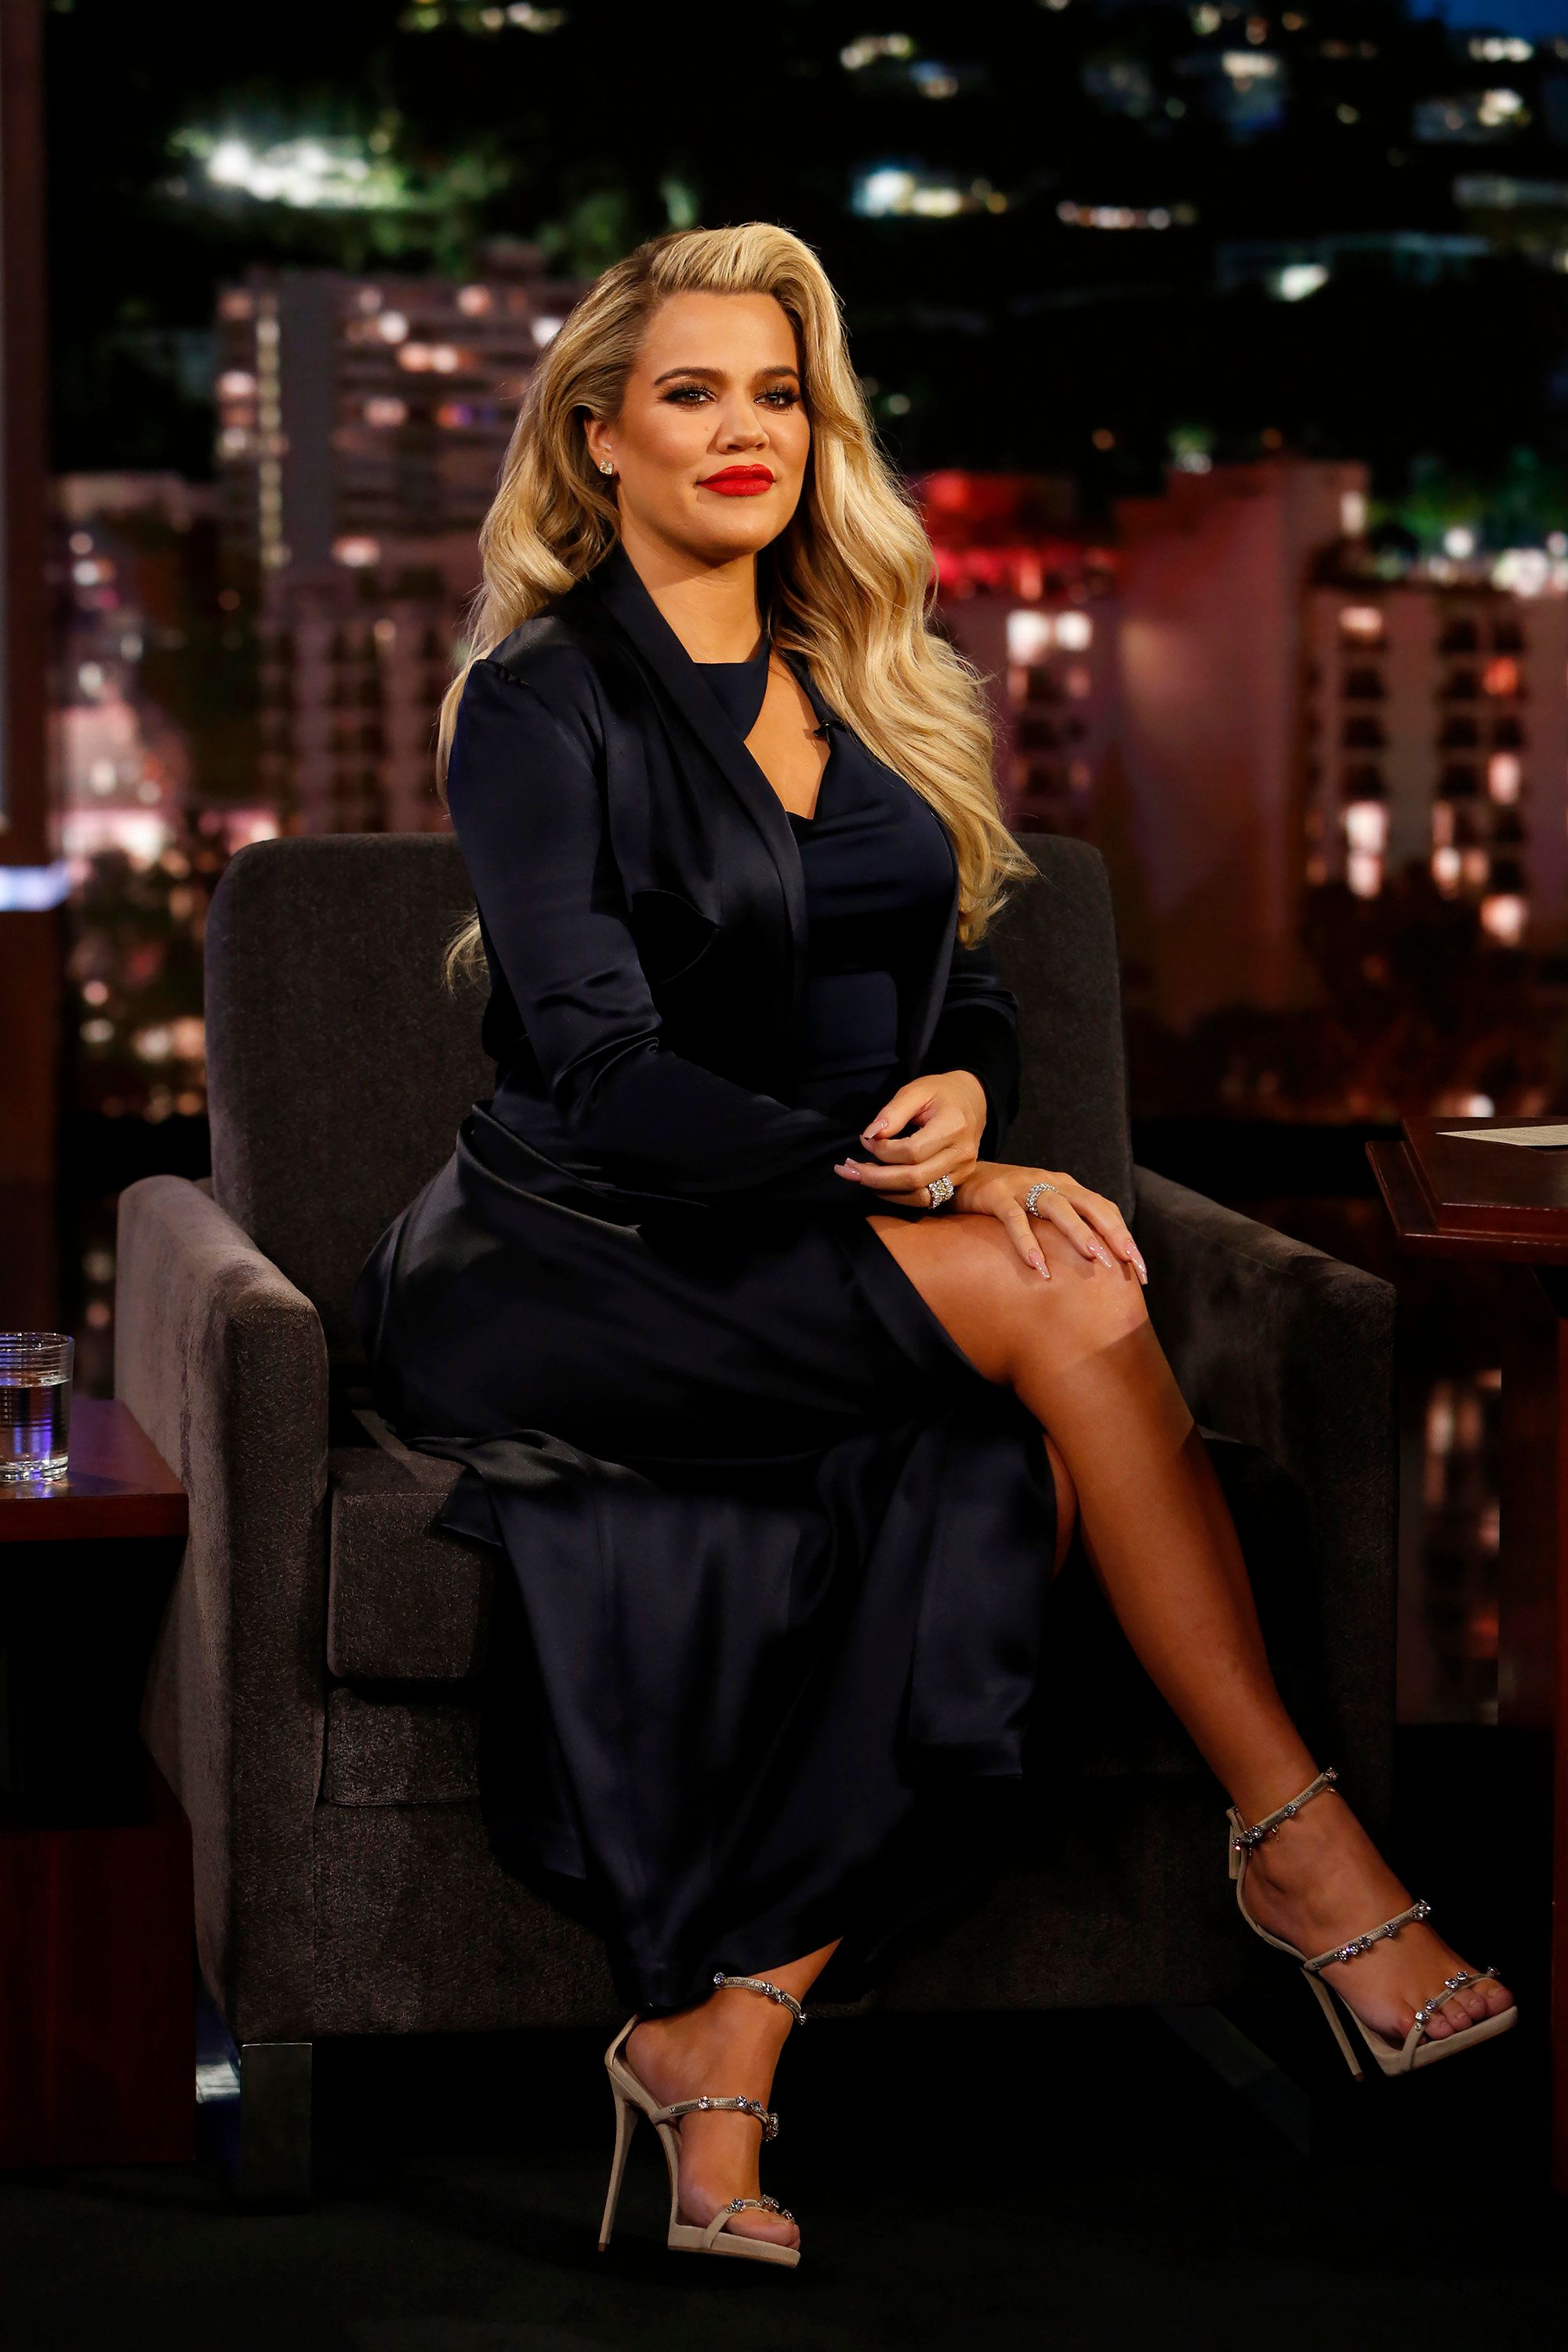 JIMMY KIMMEL LIVE! - 'Jimmy Kimmel Live!' airs every weeknight at 11:35 p.m. EST and features a diverse lineup of guests that include celebrities, athletes, musical acts, comedians and human interest subjects, along with comedy bits and a house band. The guests for Thursday, January 4 included Kobe Bryant ('Dear Basketball'), Khloe Kardashian ('Revenge Body') and musical guest Prophets of Rage. (Randy Holmes/ABC via Getty Images) KHLOE KARDASHIAN